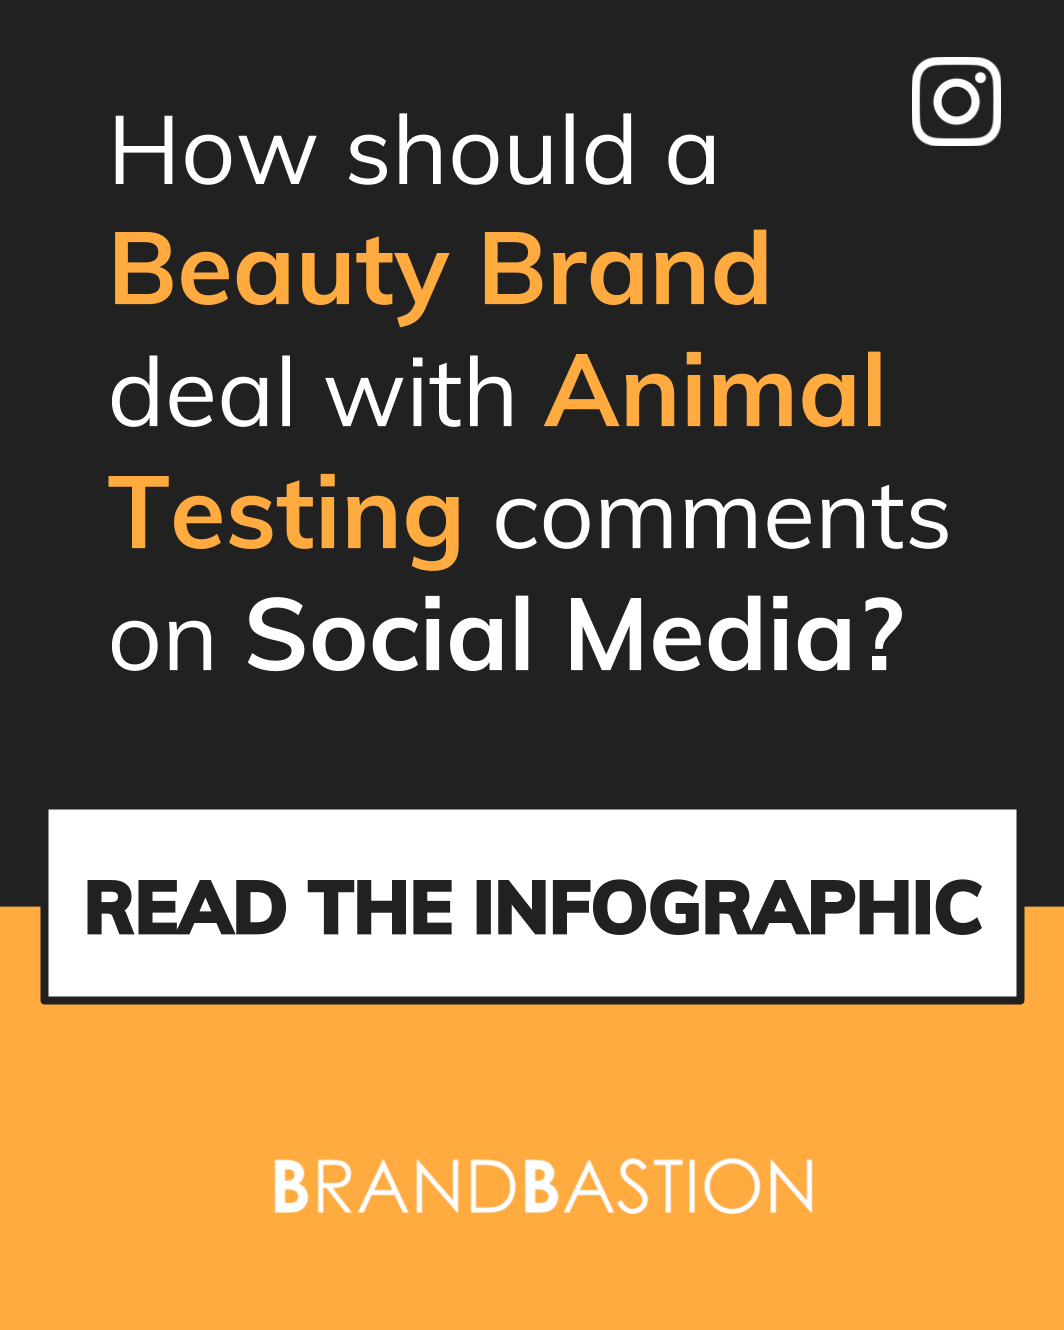 Infographic: How should Beauty Brands deal with Animal Testing comments on Social Media?